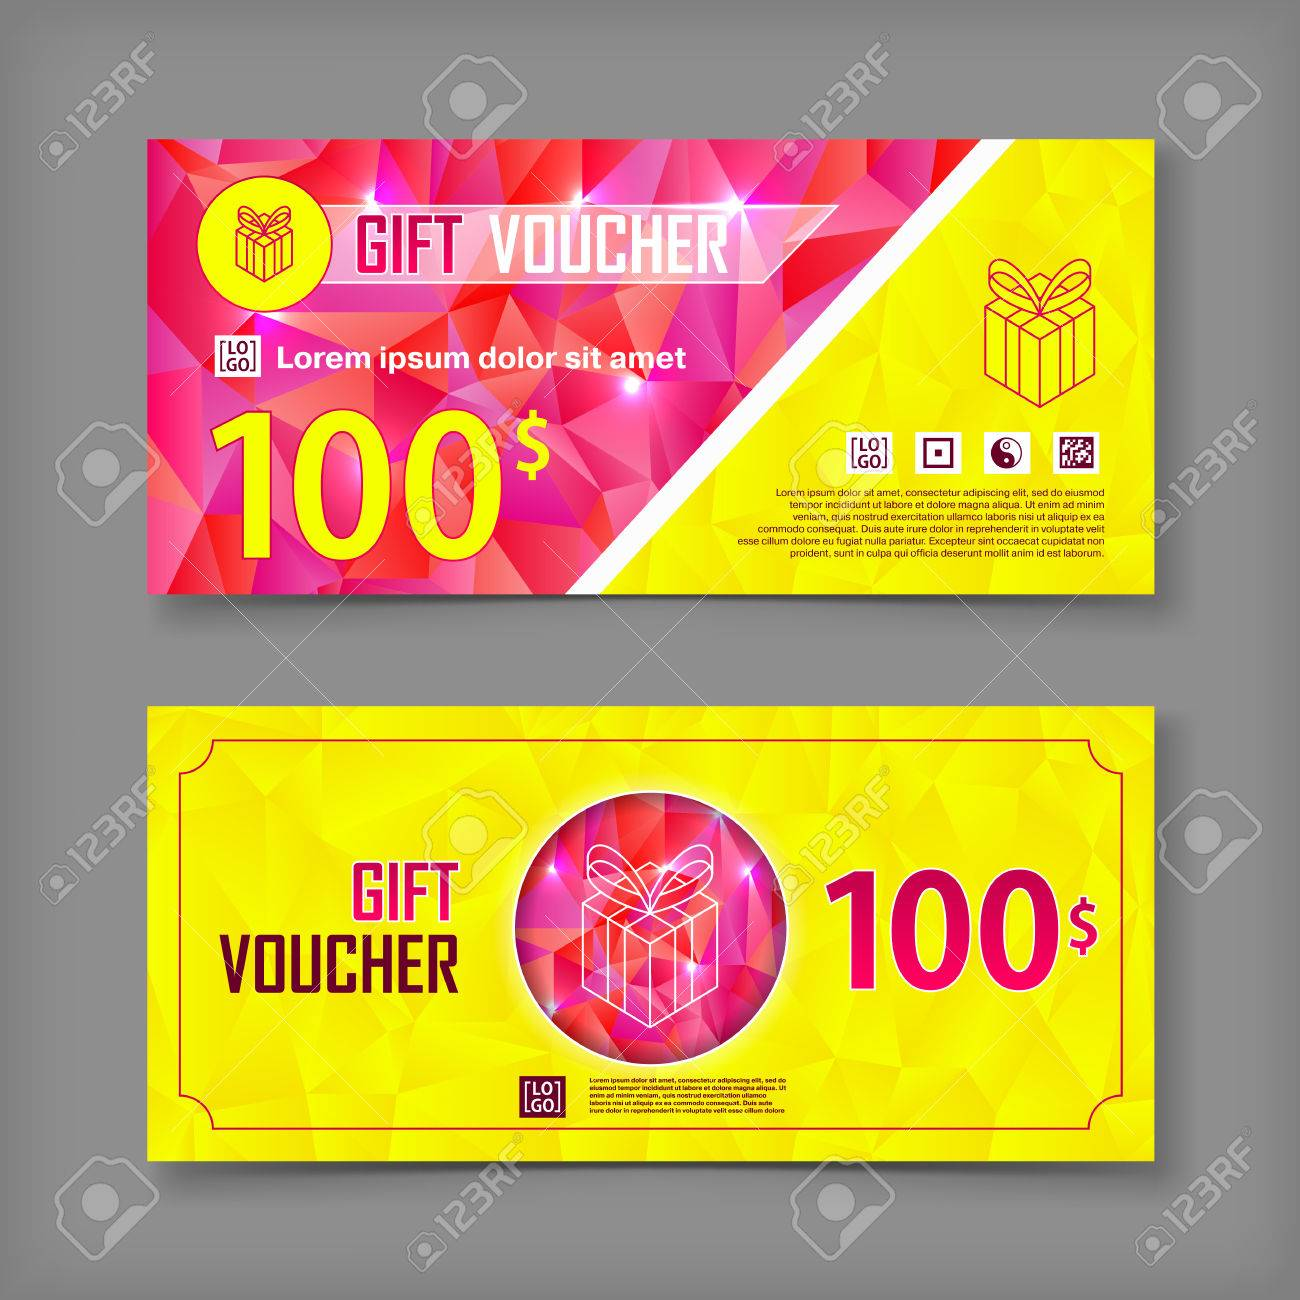 coupon vector image